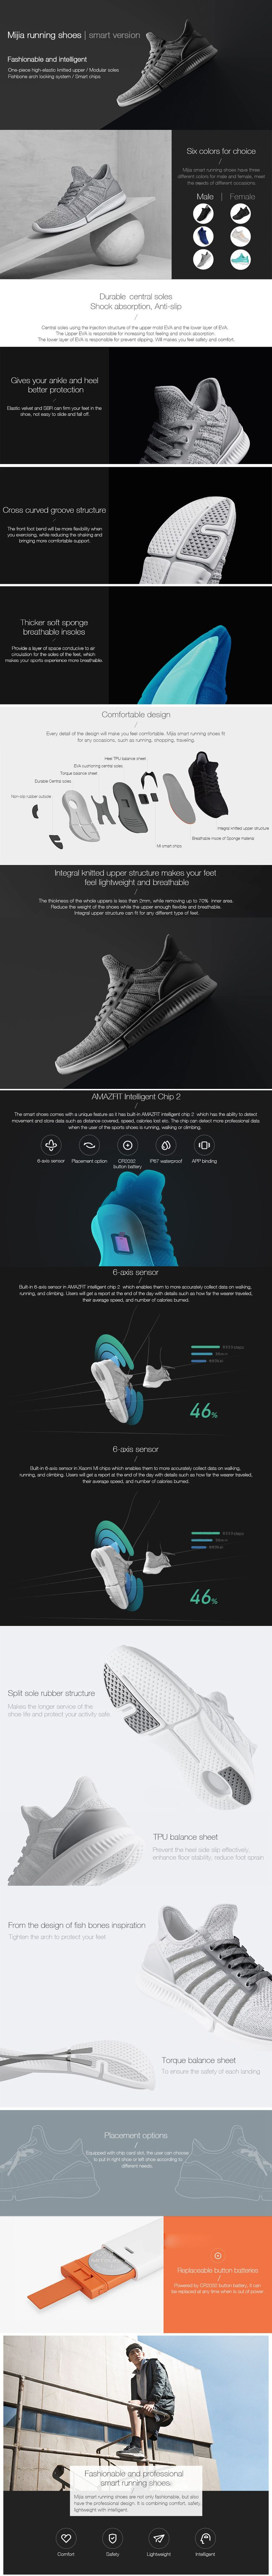 The shoes come with a smart chip that can detect movement and store data such as distance covered, speed, calories lost, etc. providing more professional data.